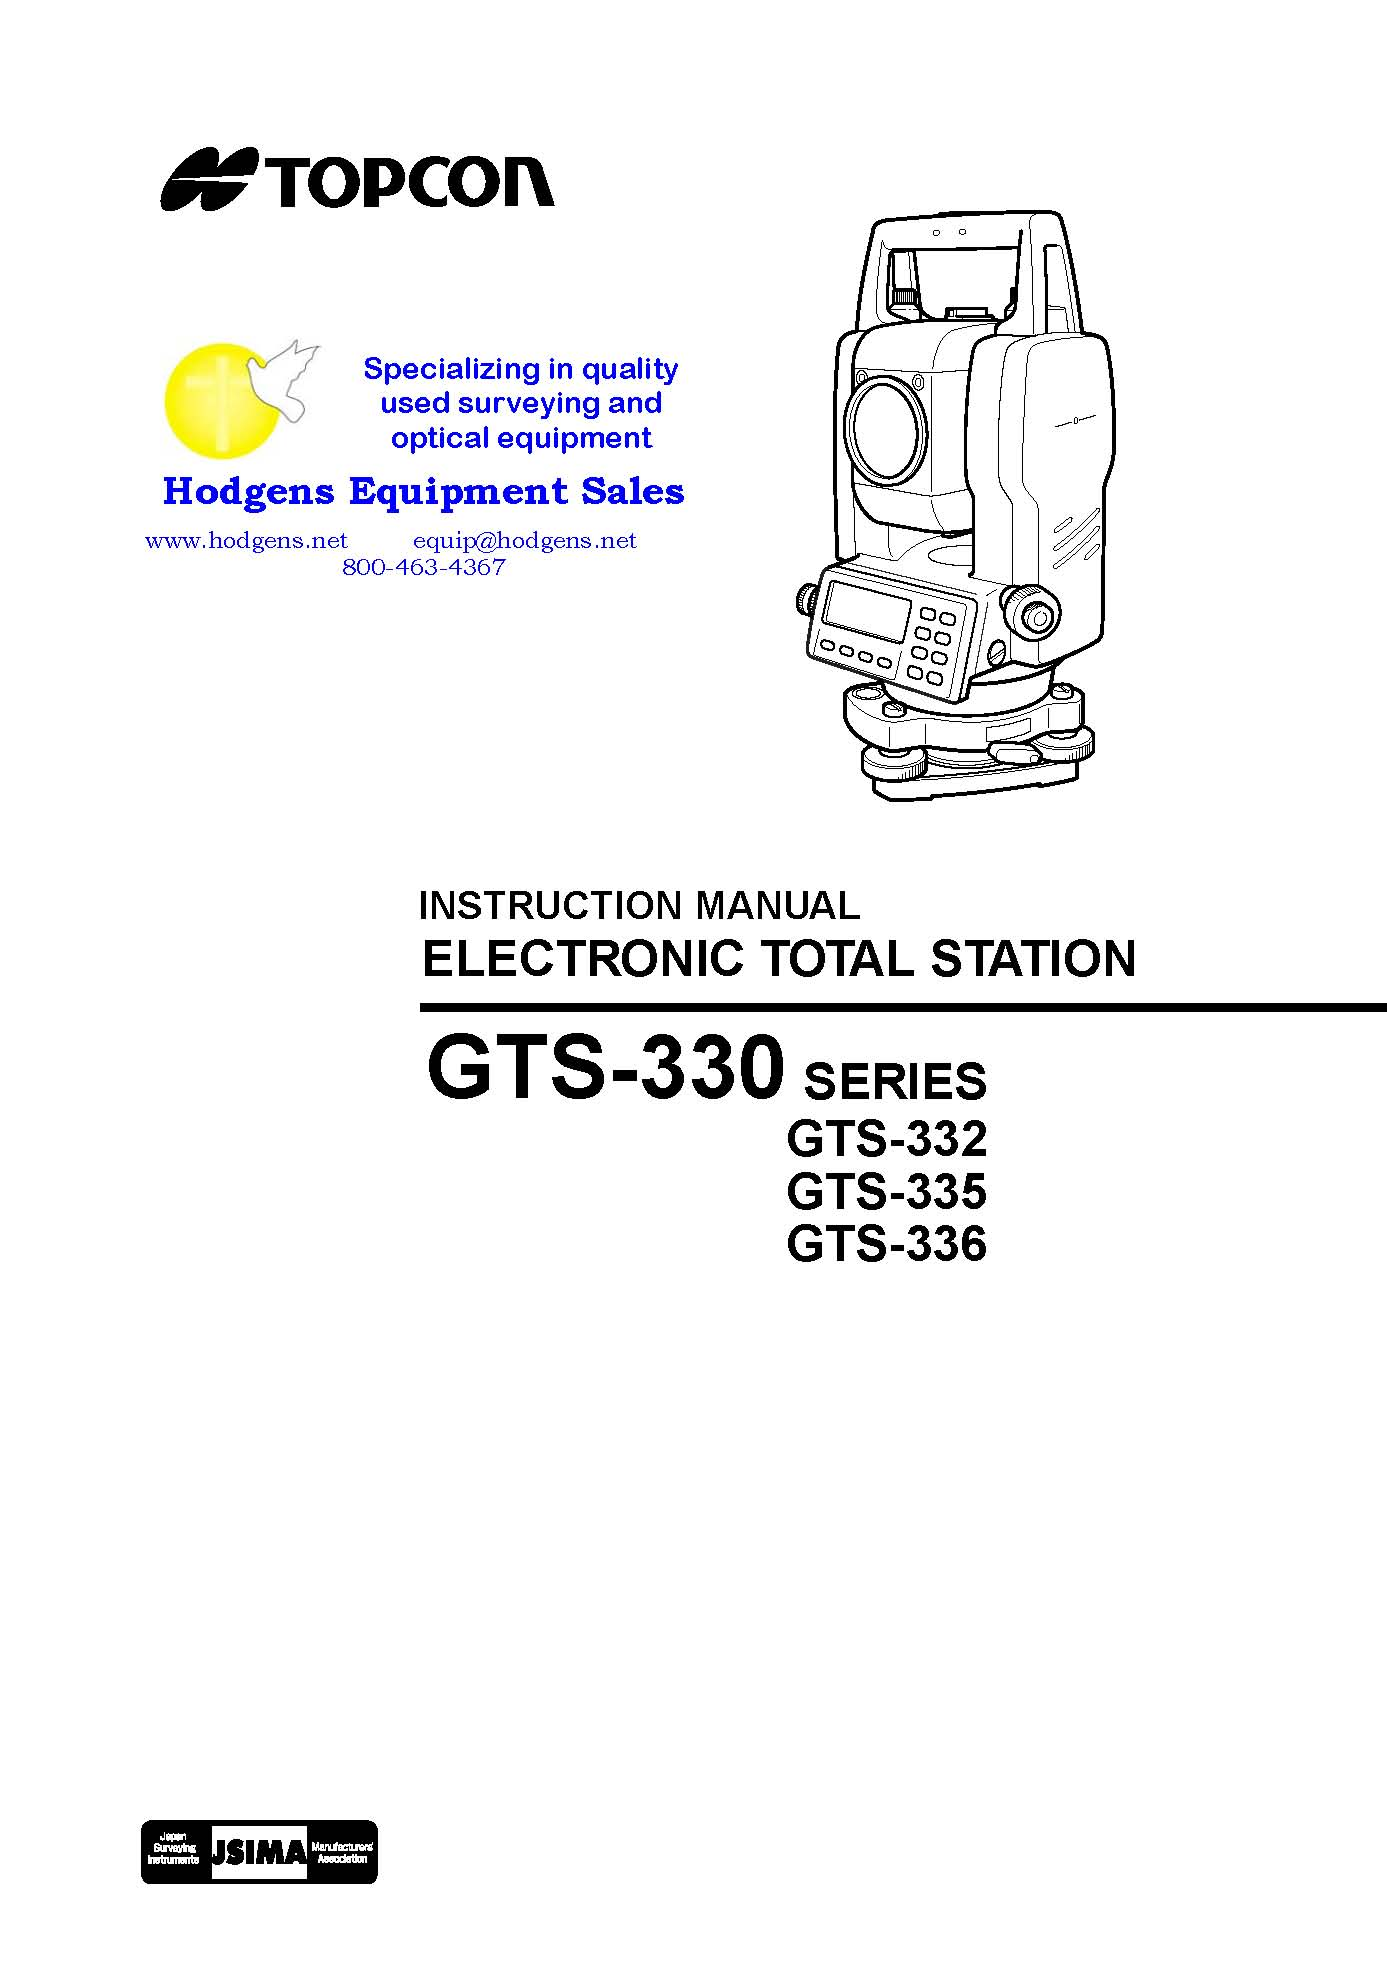 topcon gts 330 series geodetic total station instruction manual documents  and forms manuals ...